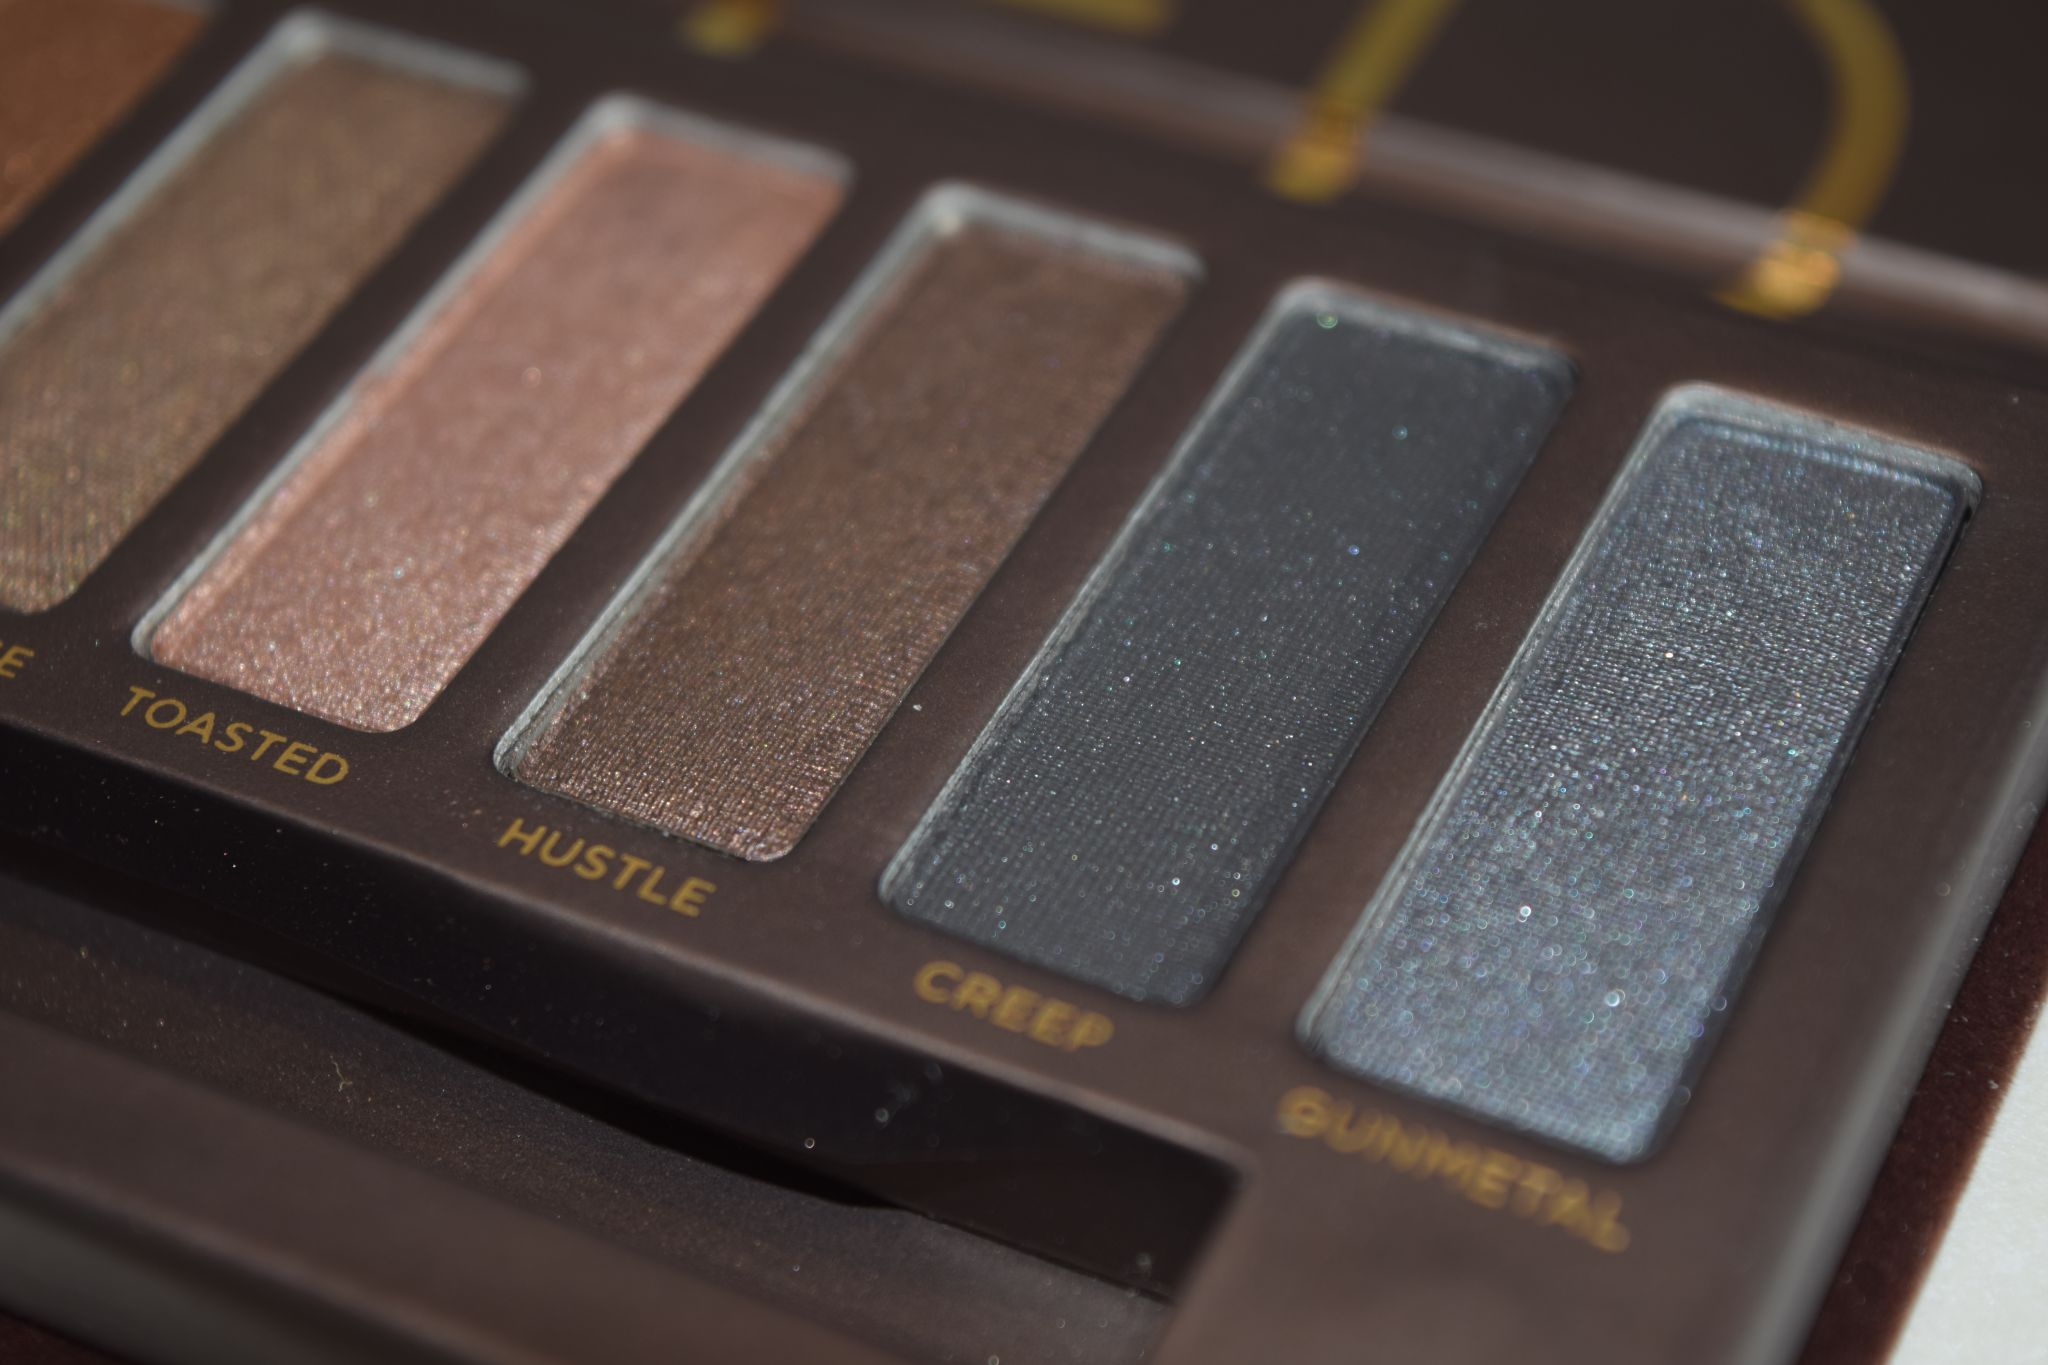 Urban Decay Naked Palette8